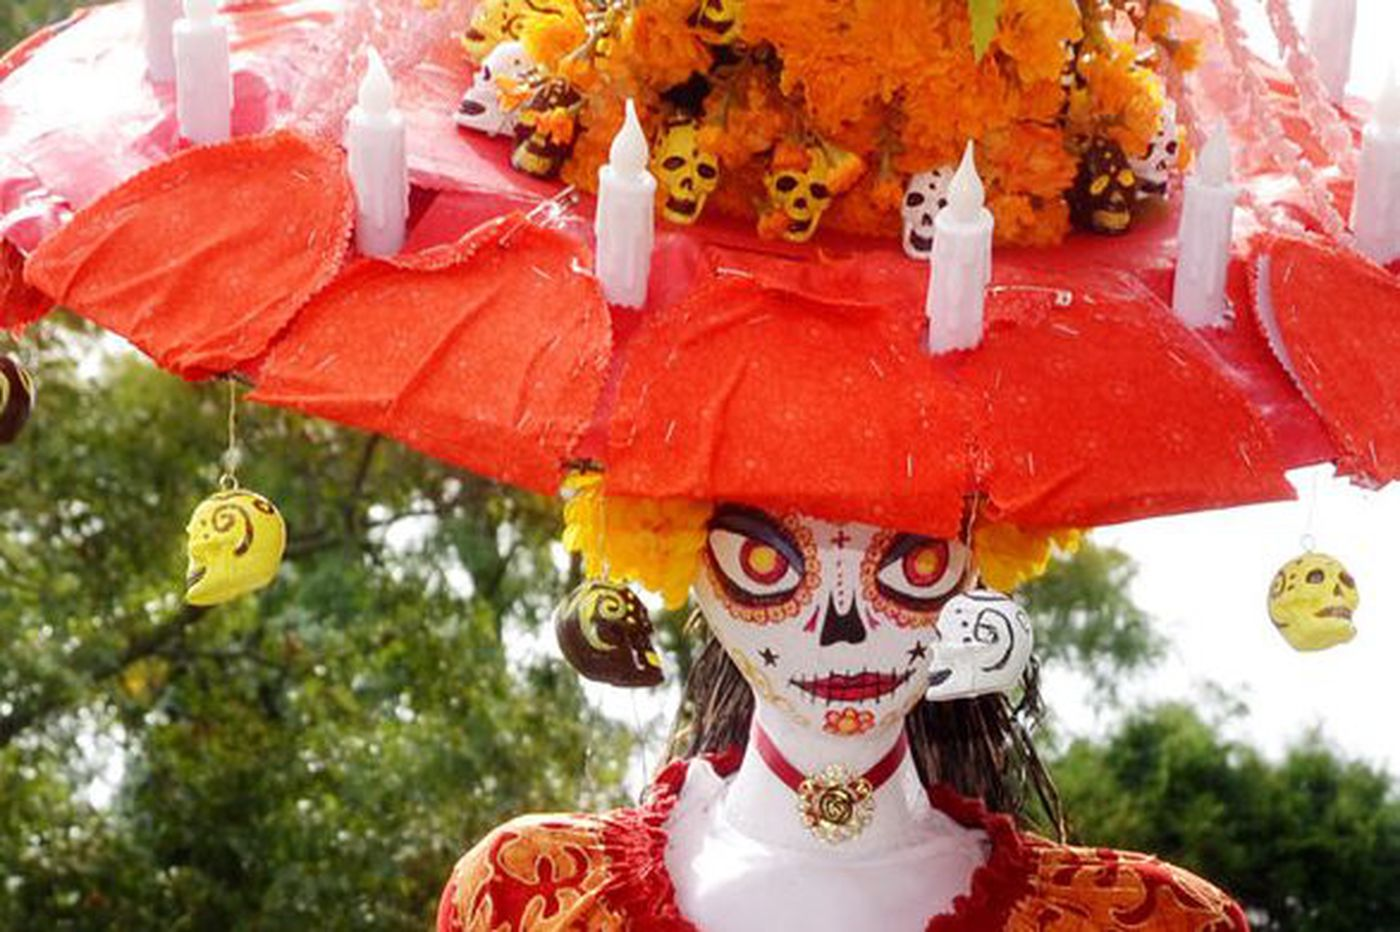 Fall festivals: apples, honey, scarecrows and a few parades, too